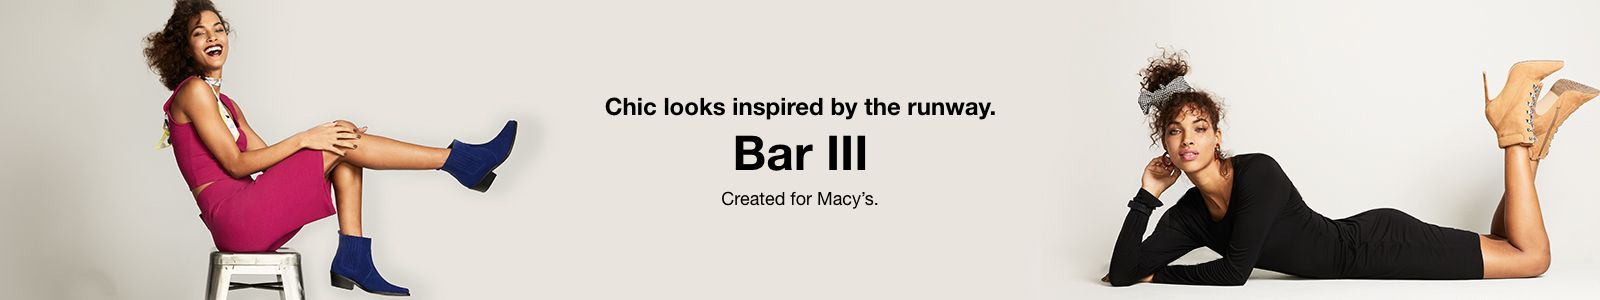 Chic looks inspired by the runway, Bar III, Created for Macy's